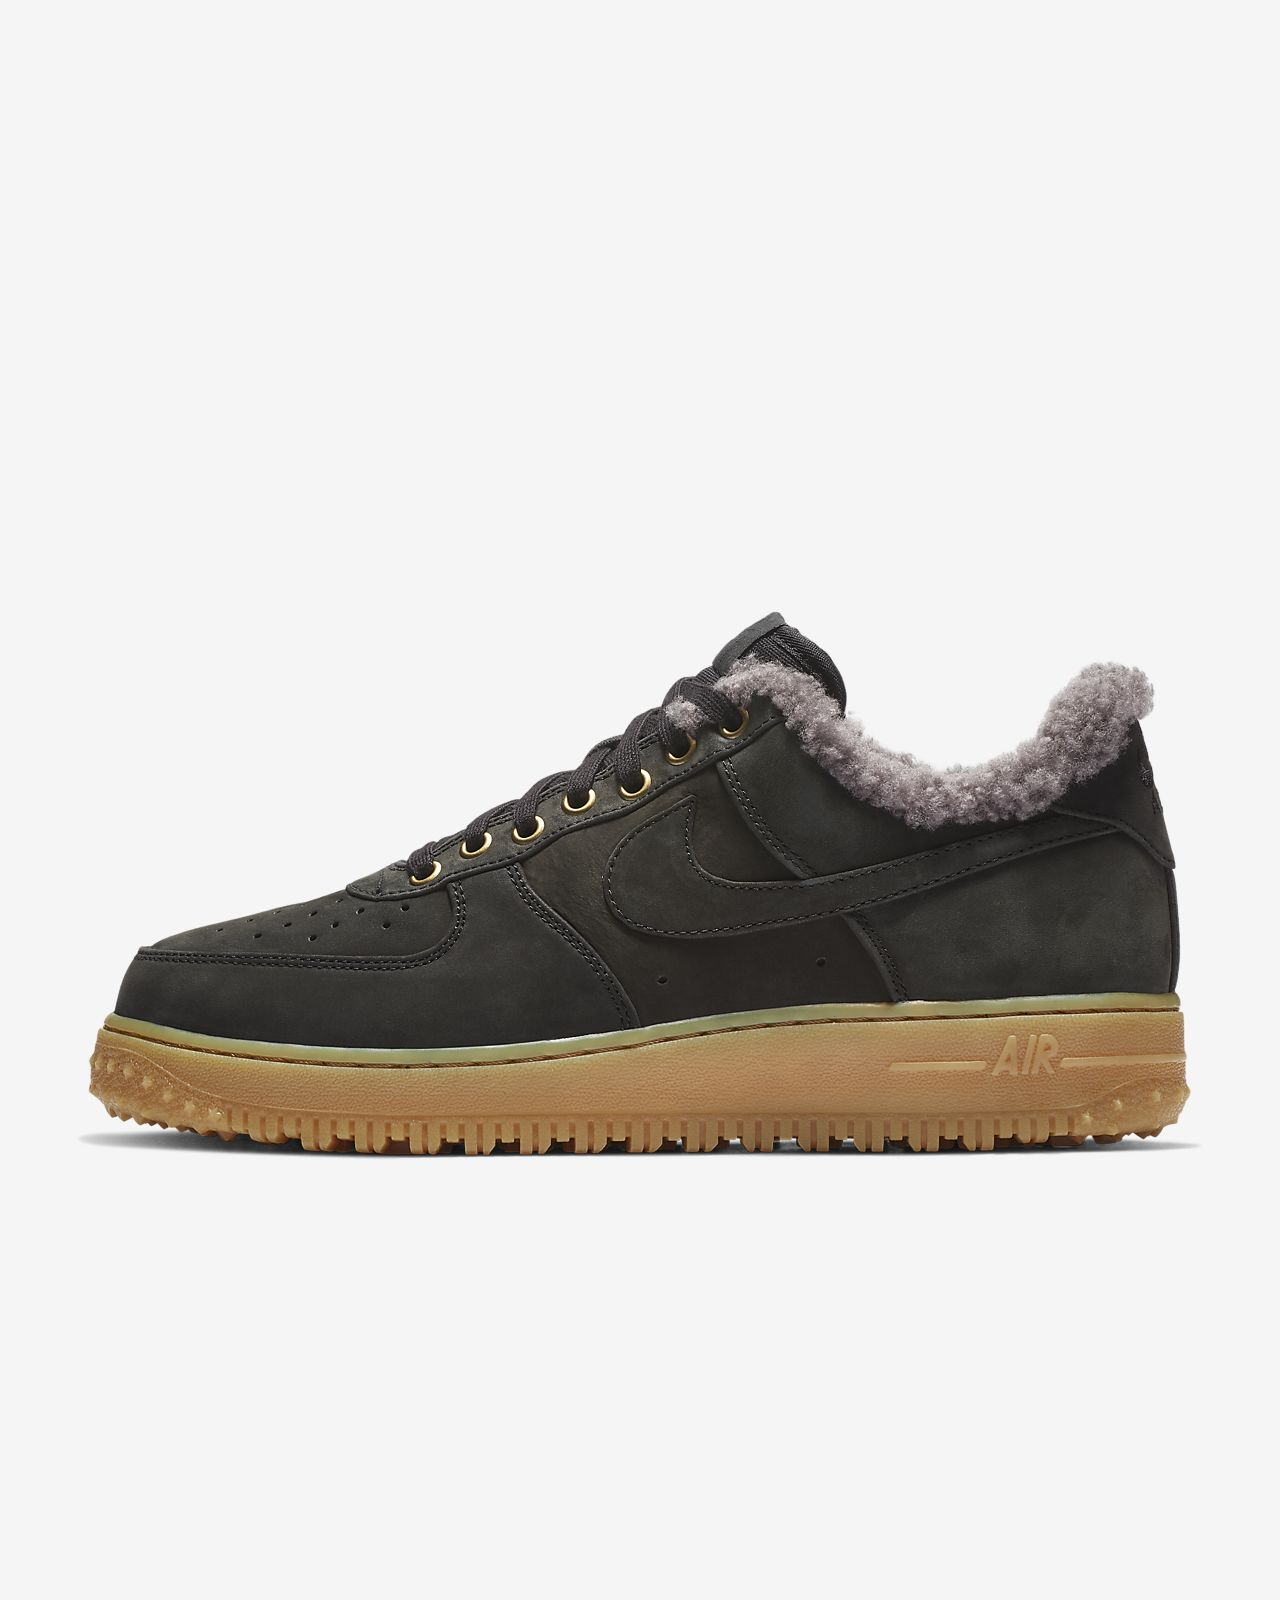 new product 91d97 d2e15 ... Chaussure Nike Air Force 1 Premium Winter pour Homme